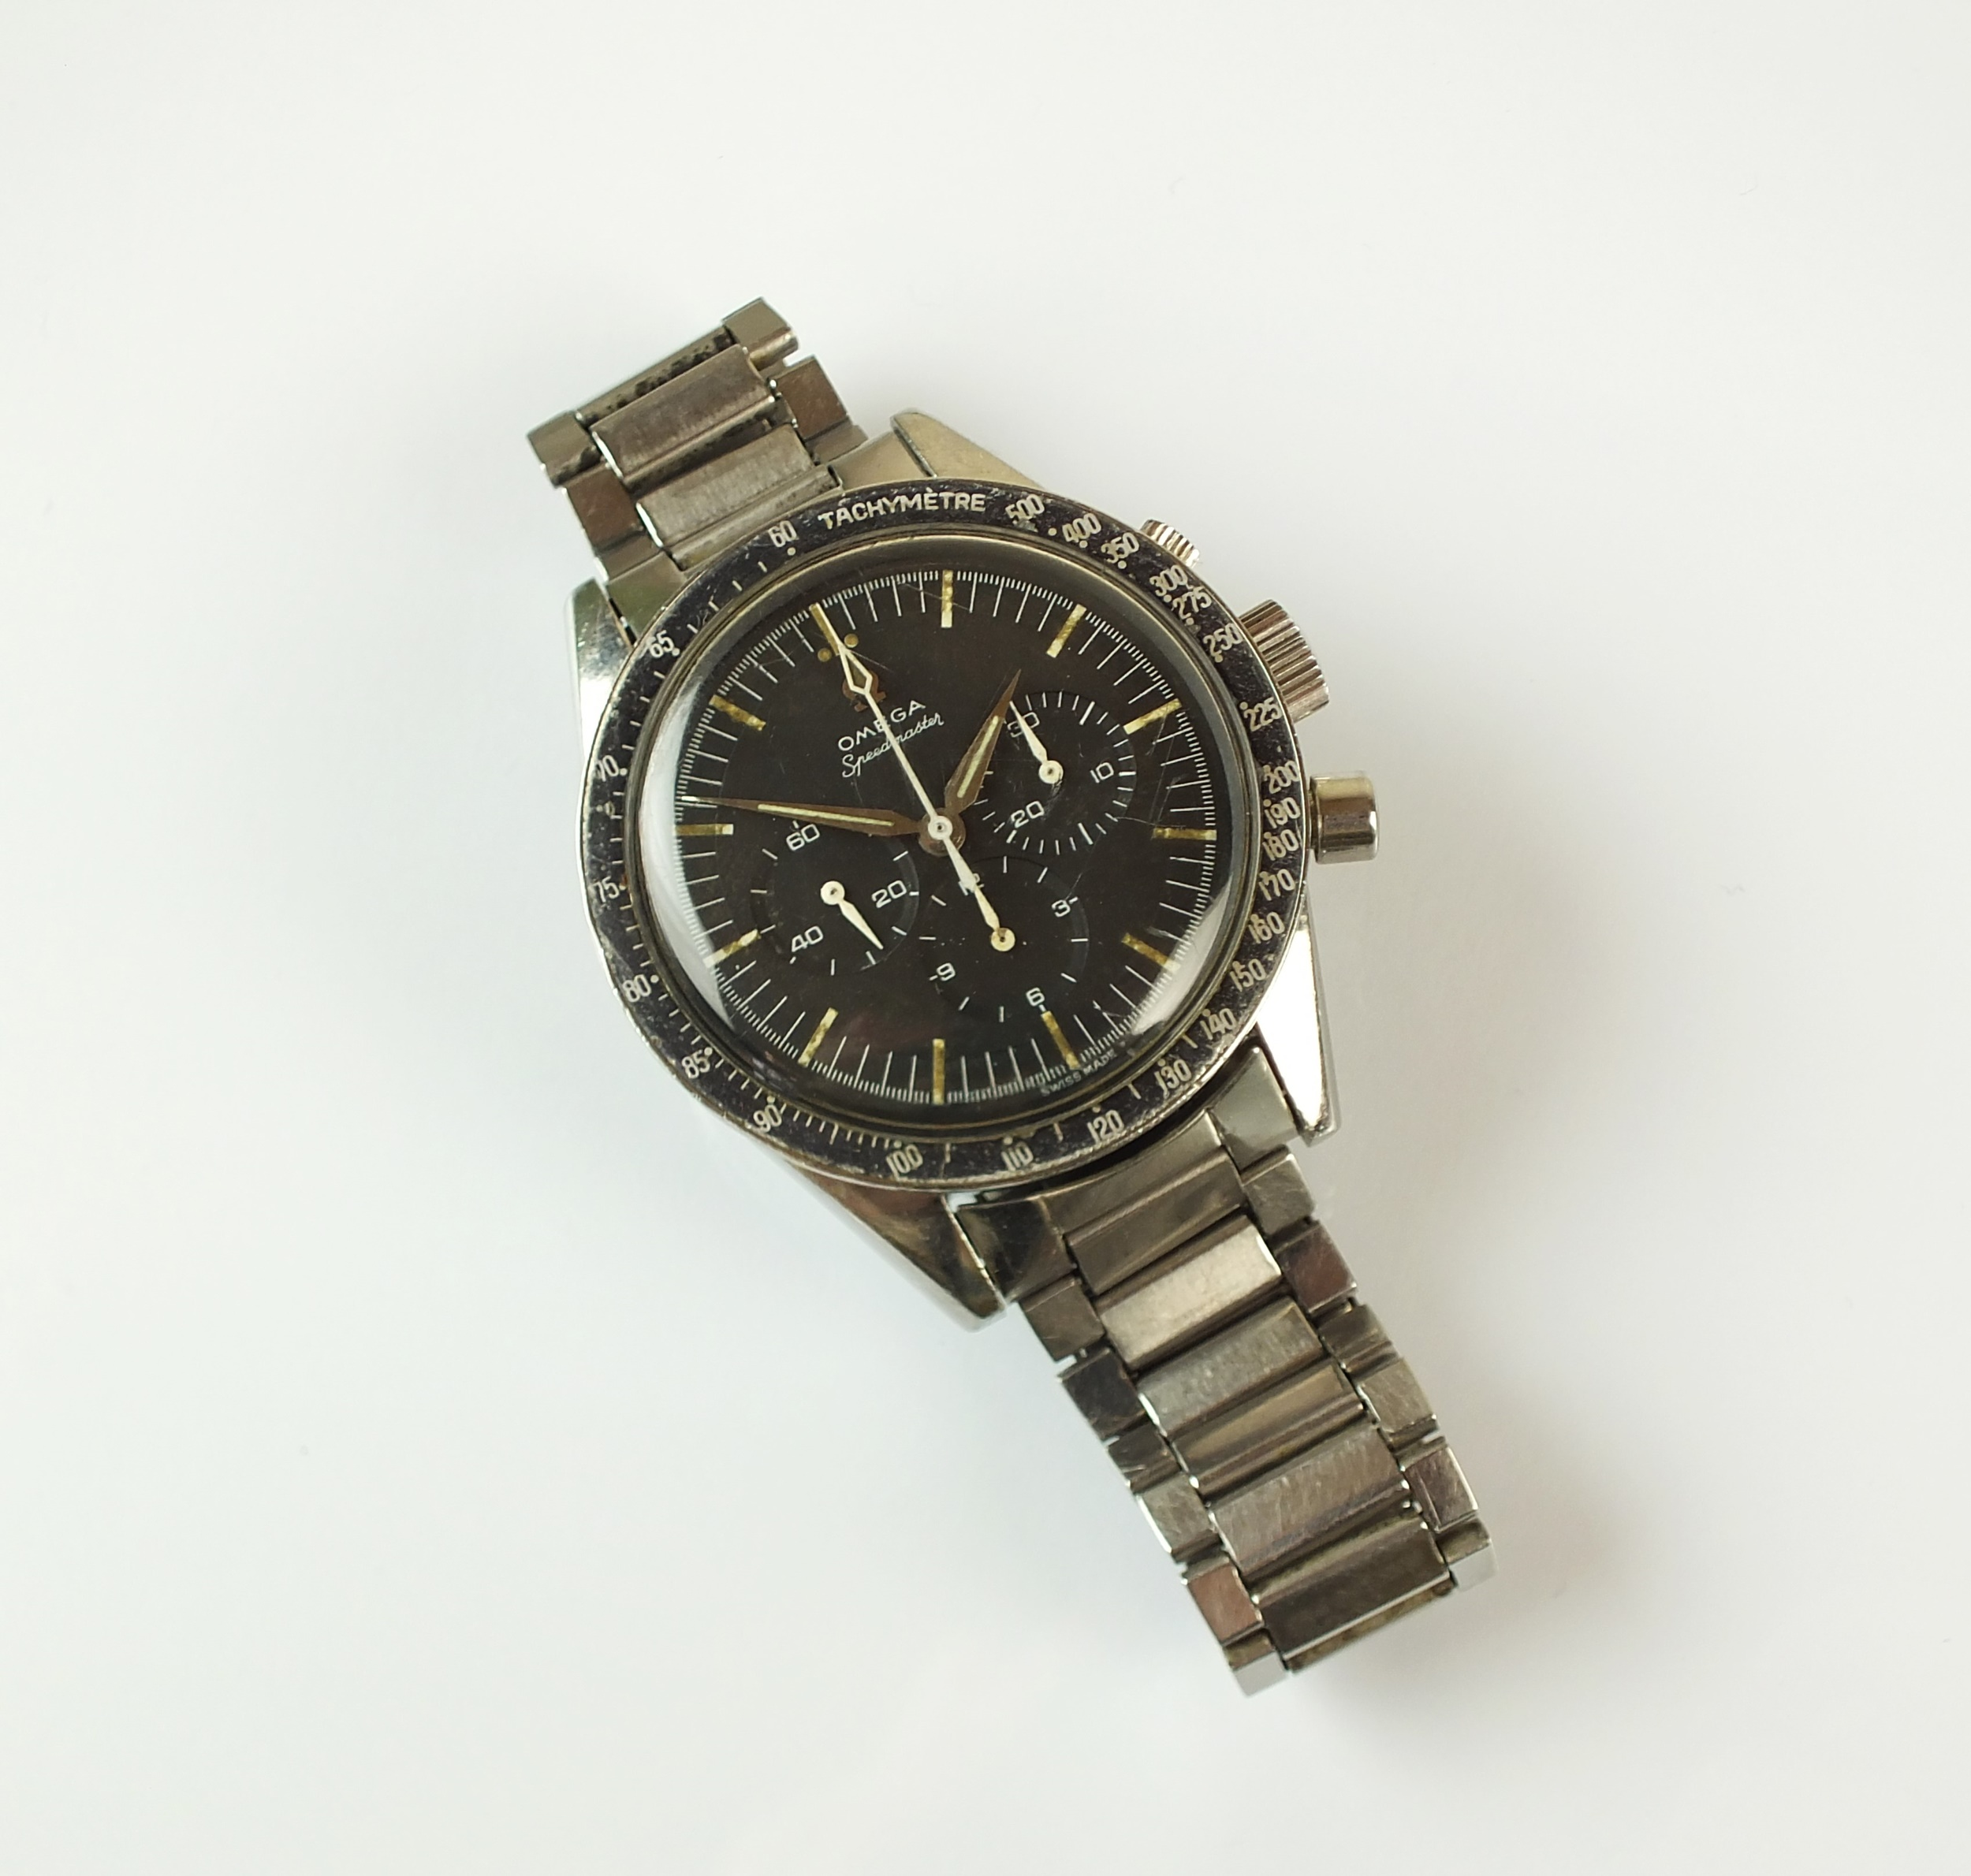 Lot 173 (The Autumn Auction, 16th September 2020)  An Omega Speedmaster wristwatch An Omega Speedmaster wristwatch, the black dial with luminous batons and three subsidiary dials, with black enamel tachymetre bezel, circa 1961, serial number 17-764-***, reference 2998-4, with attached Omega stainless steel bracelet  Sold for £8,200